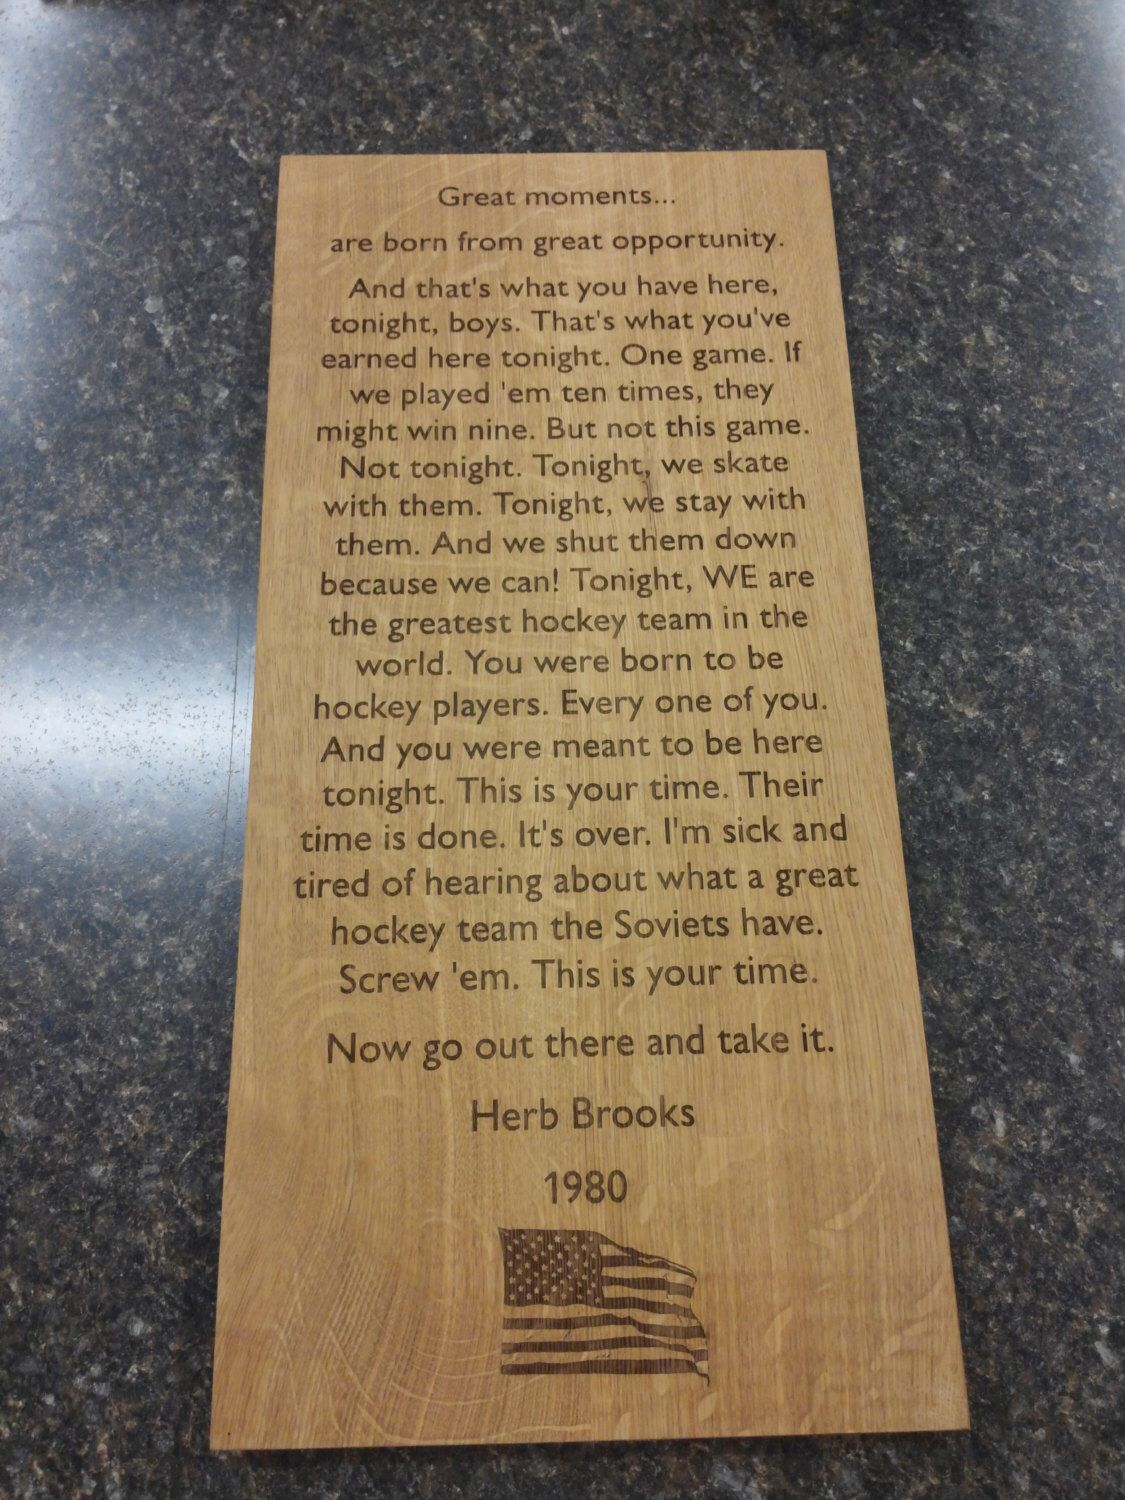 garage man cave Rules Sign Wall Sign Carved Engraved 11x24 Herb Brooks quote USA Hockey Team 1980 Olympics Hockey